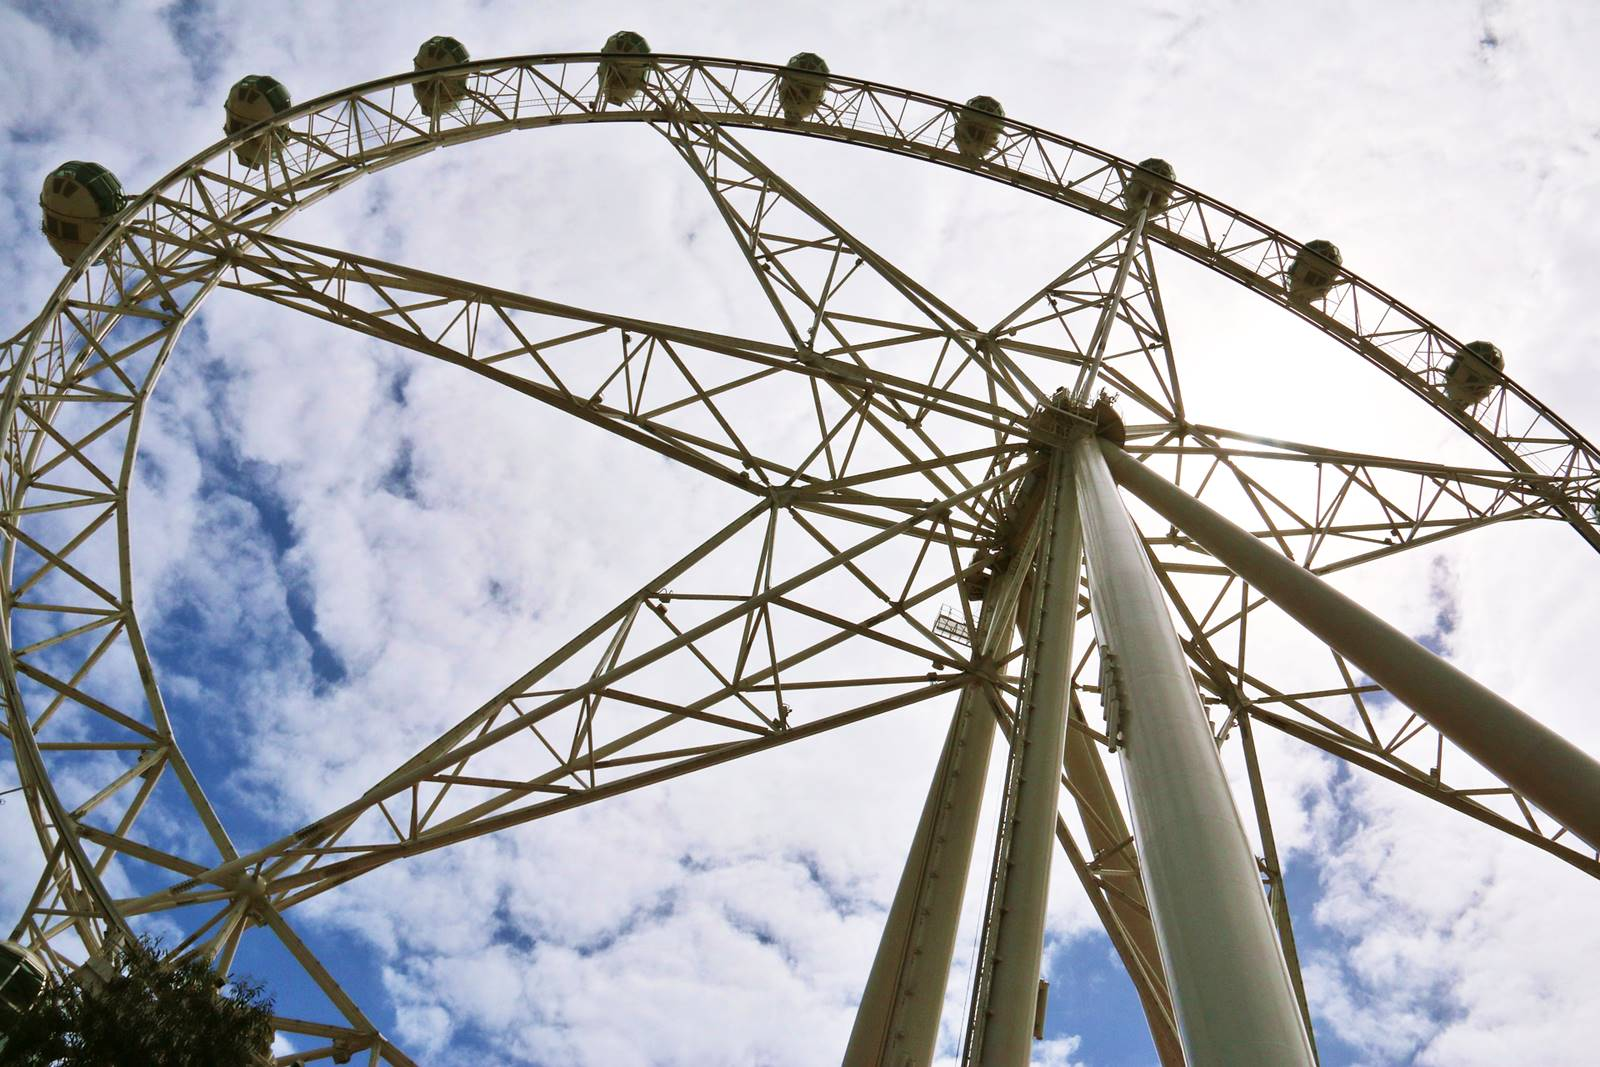 Melbourne-Melbourne Star Observation Wheel-CBD-Attraction-Recommendation-Map-Itinerary-Tourism-Independent Travel-Travel Blog-Must visit-Must See